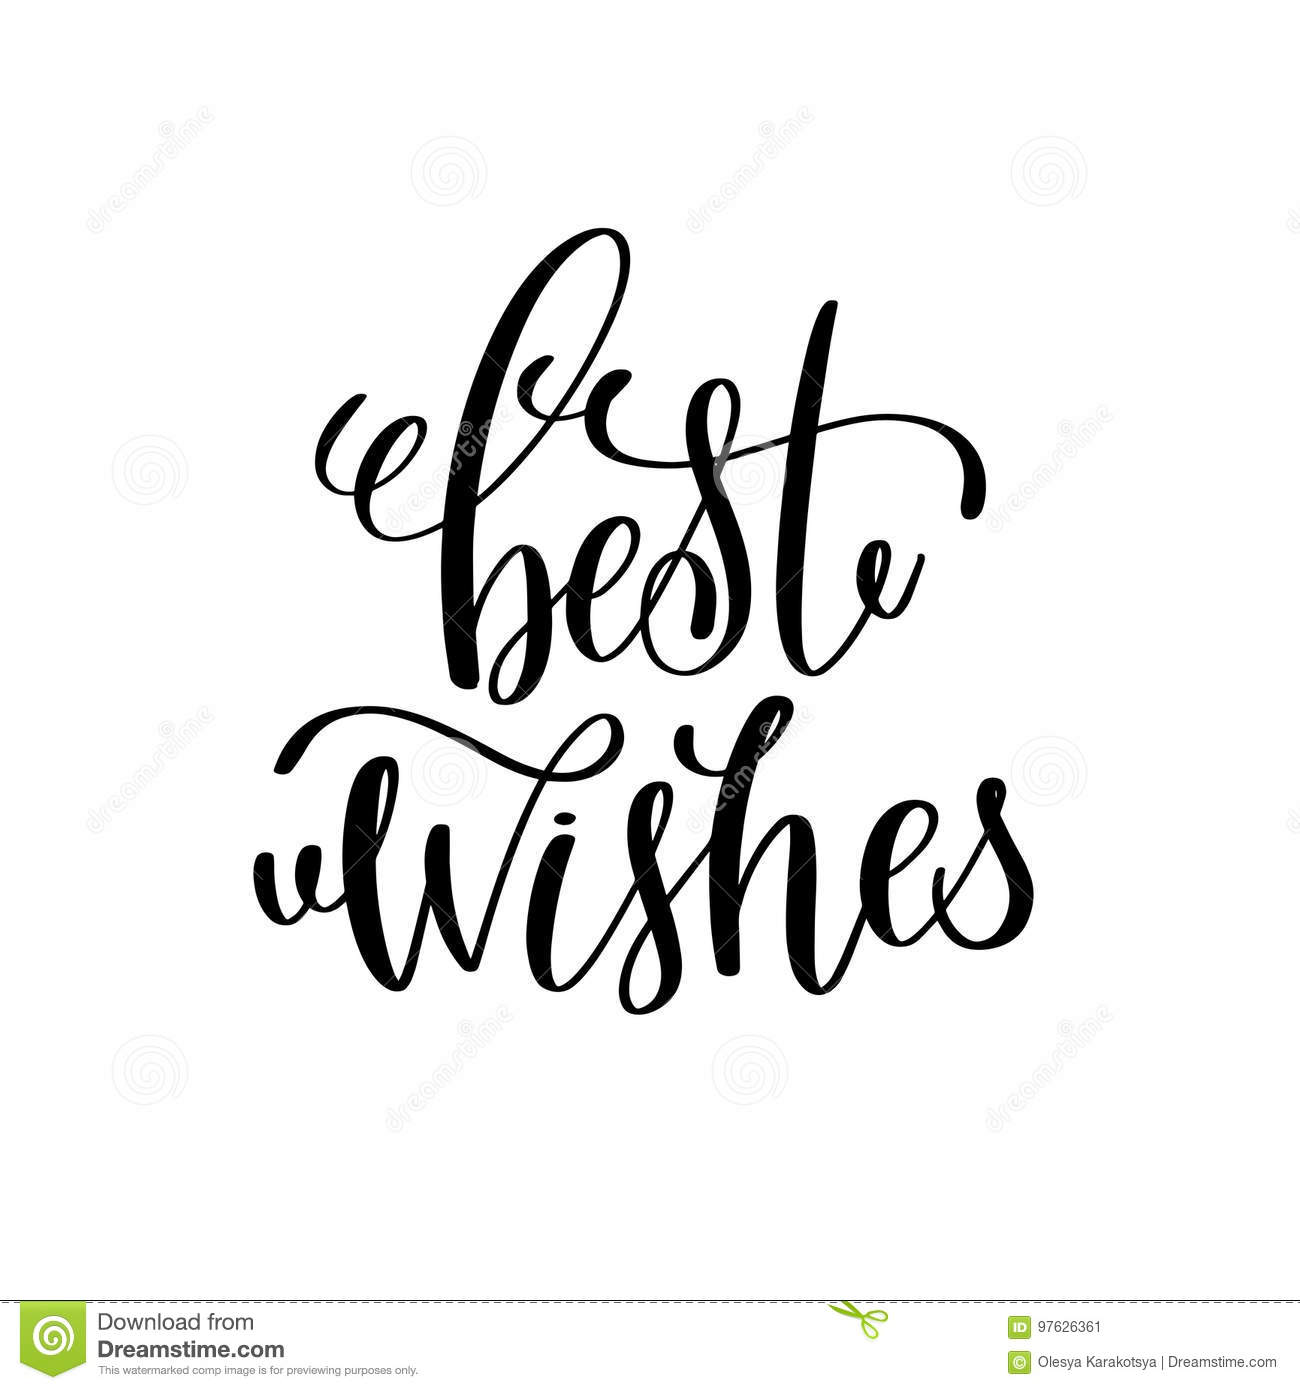 Best wishes hand lettering inscription to winter holiday stock download best wishes hand lettering inscription to winter holiday stock vector illustration of celebration m4hsunfo